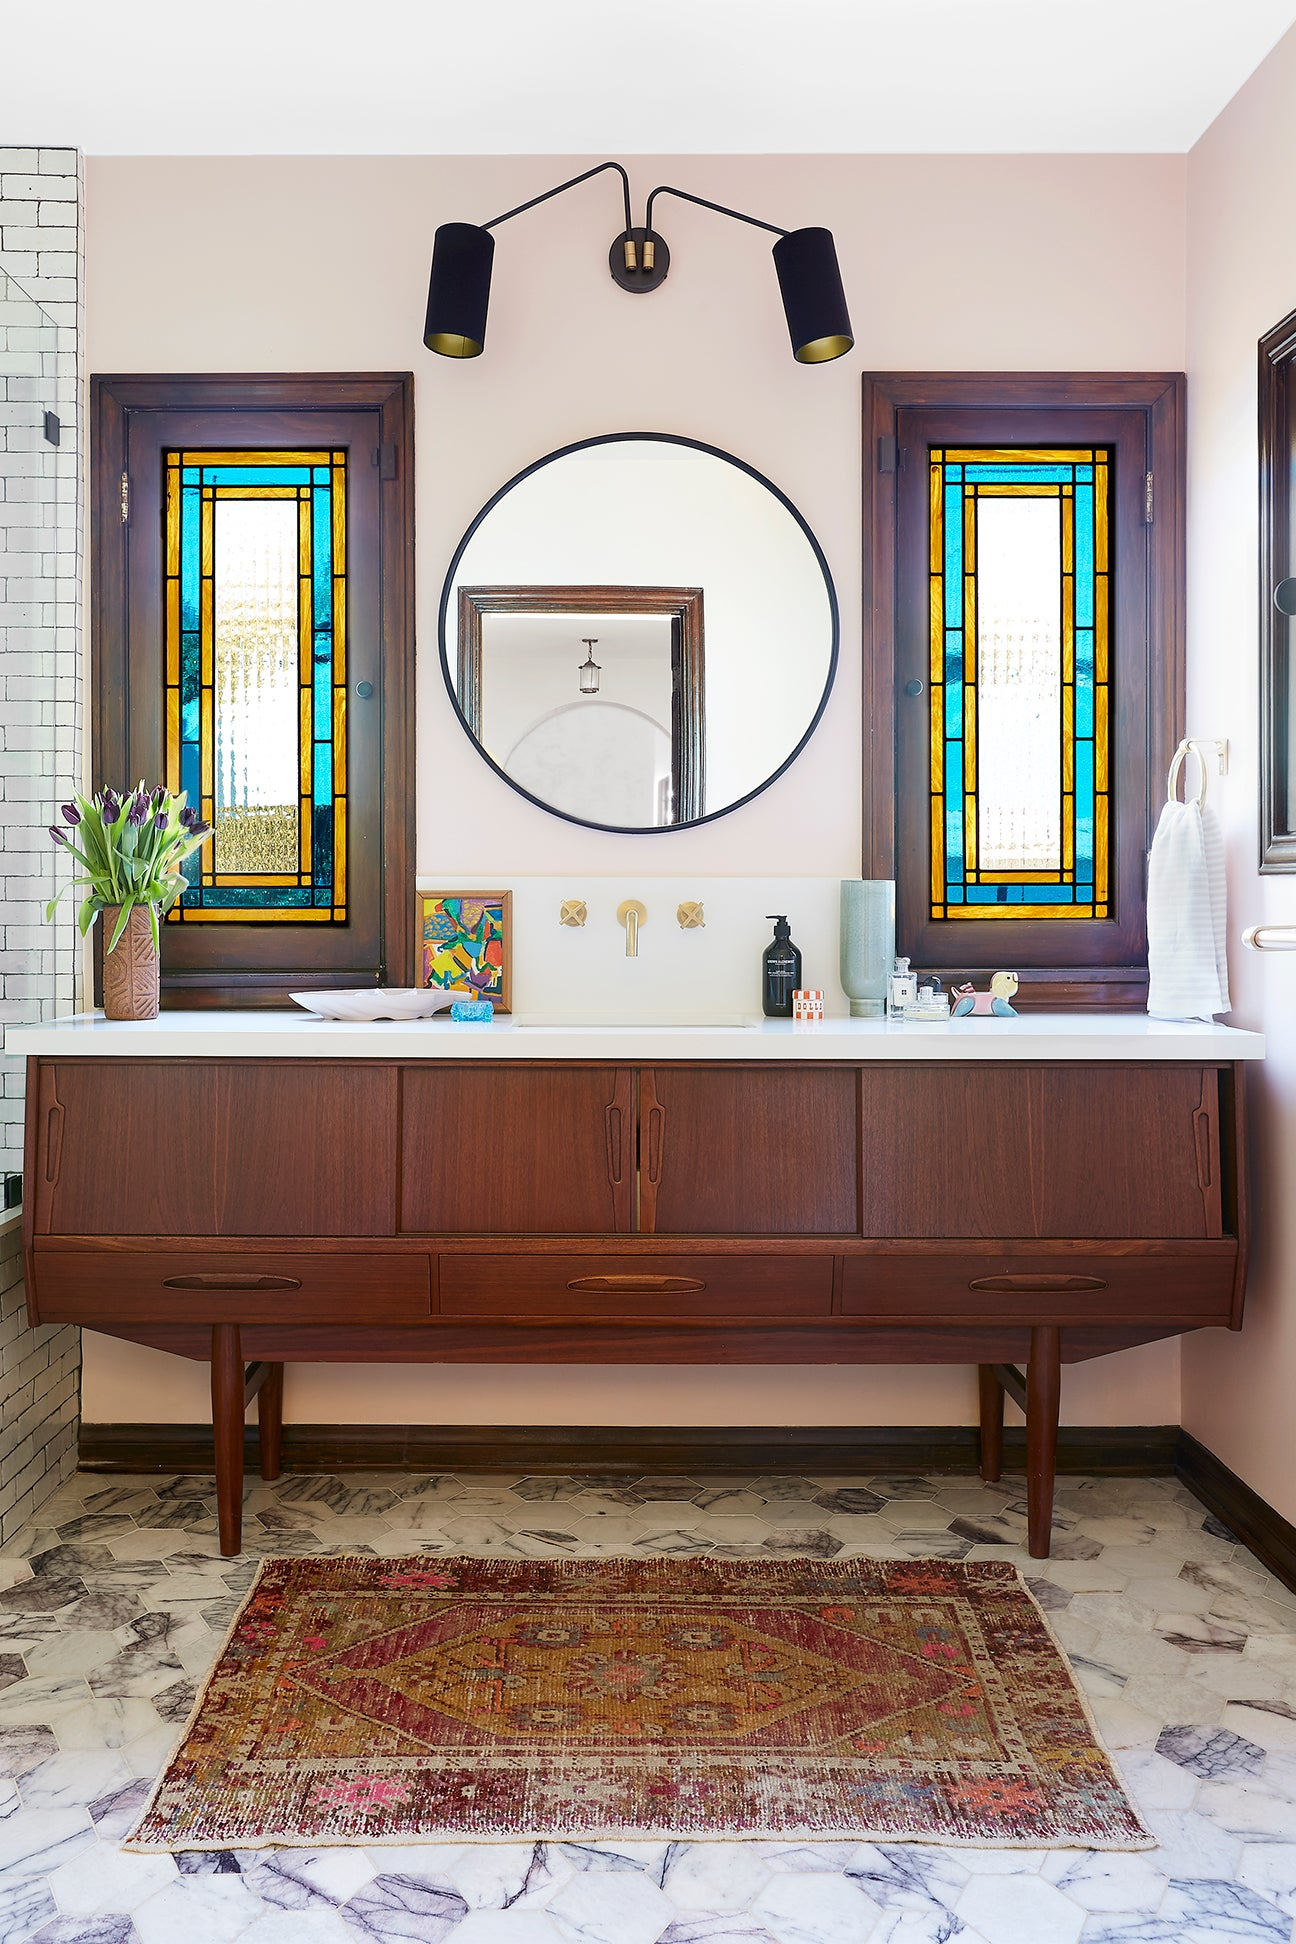 pink bathroom with stained glass windows